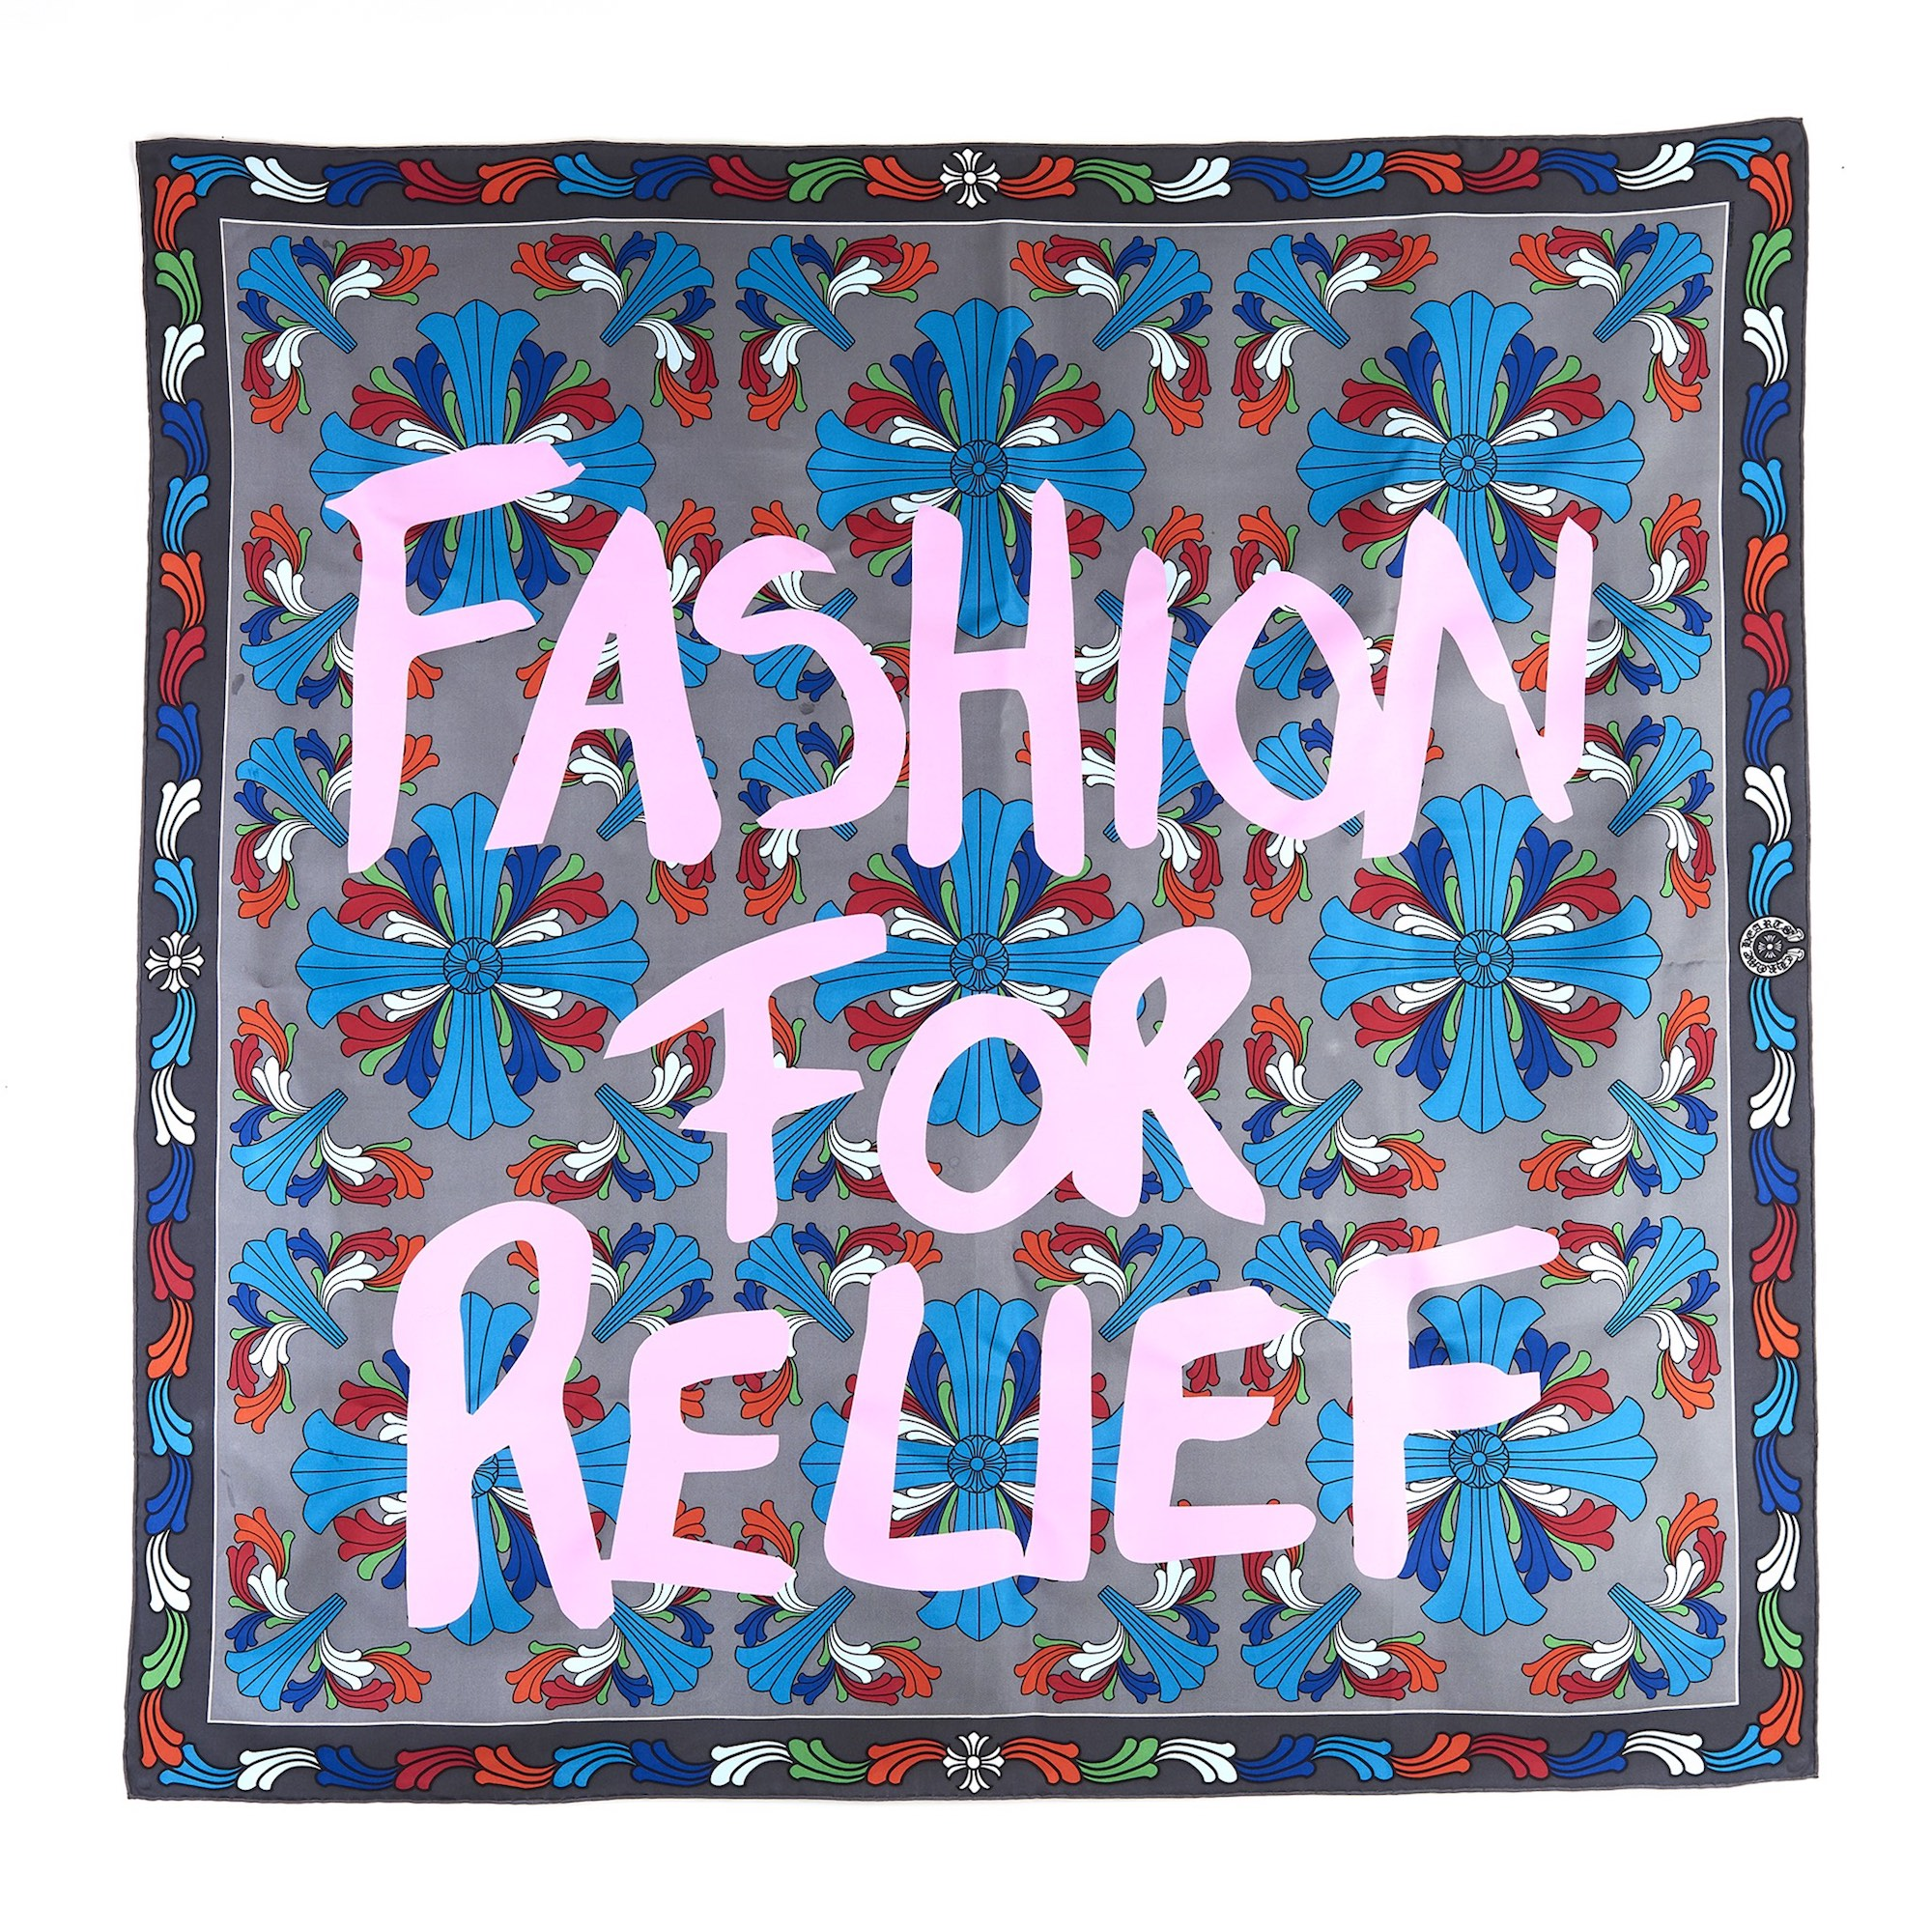 Chrome Hearts have teamed up with Naomi Campbell's Fashion For Relief pink scarf